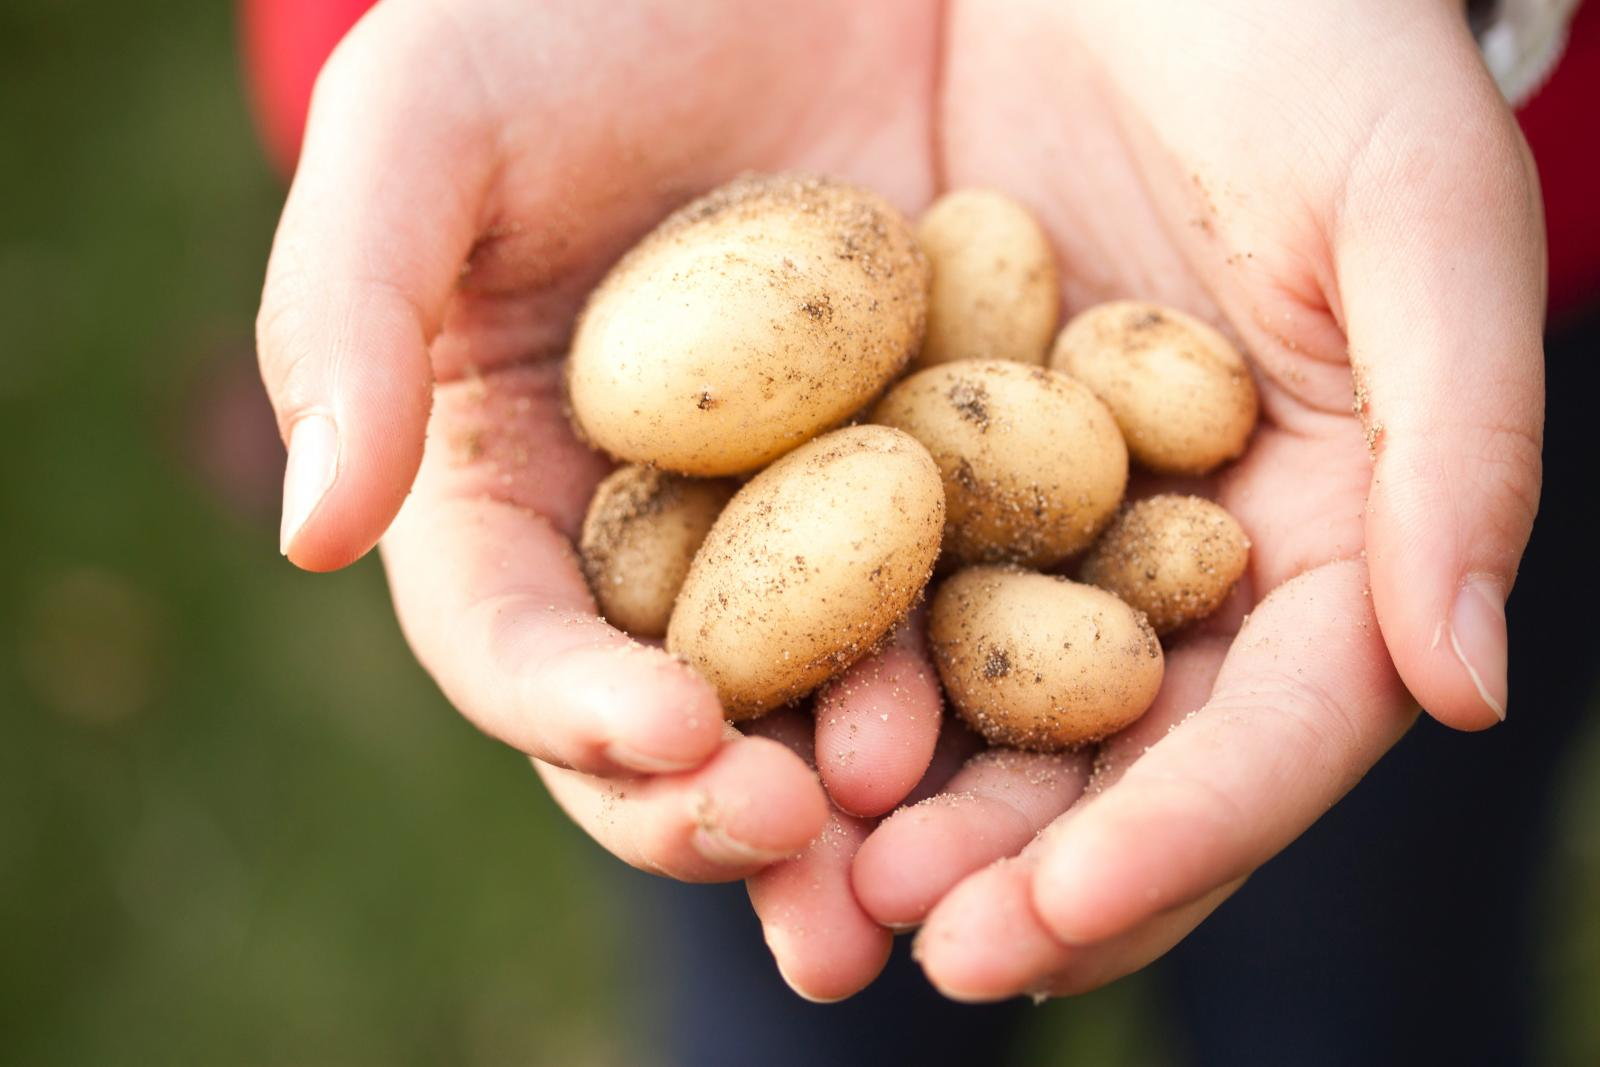 Potatoes in hands. Photo credit: Pexels